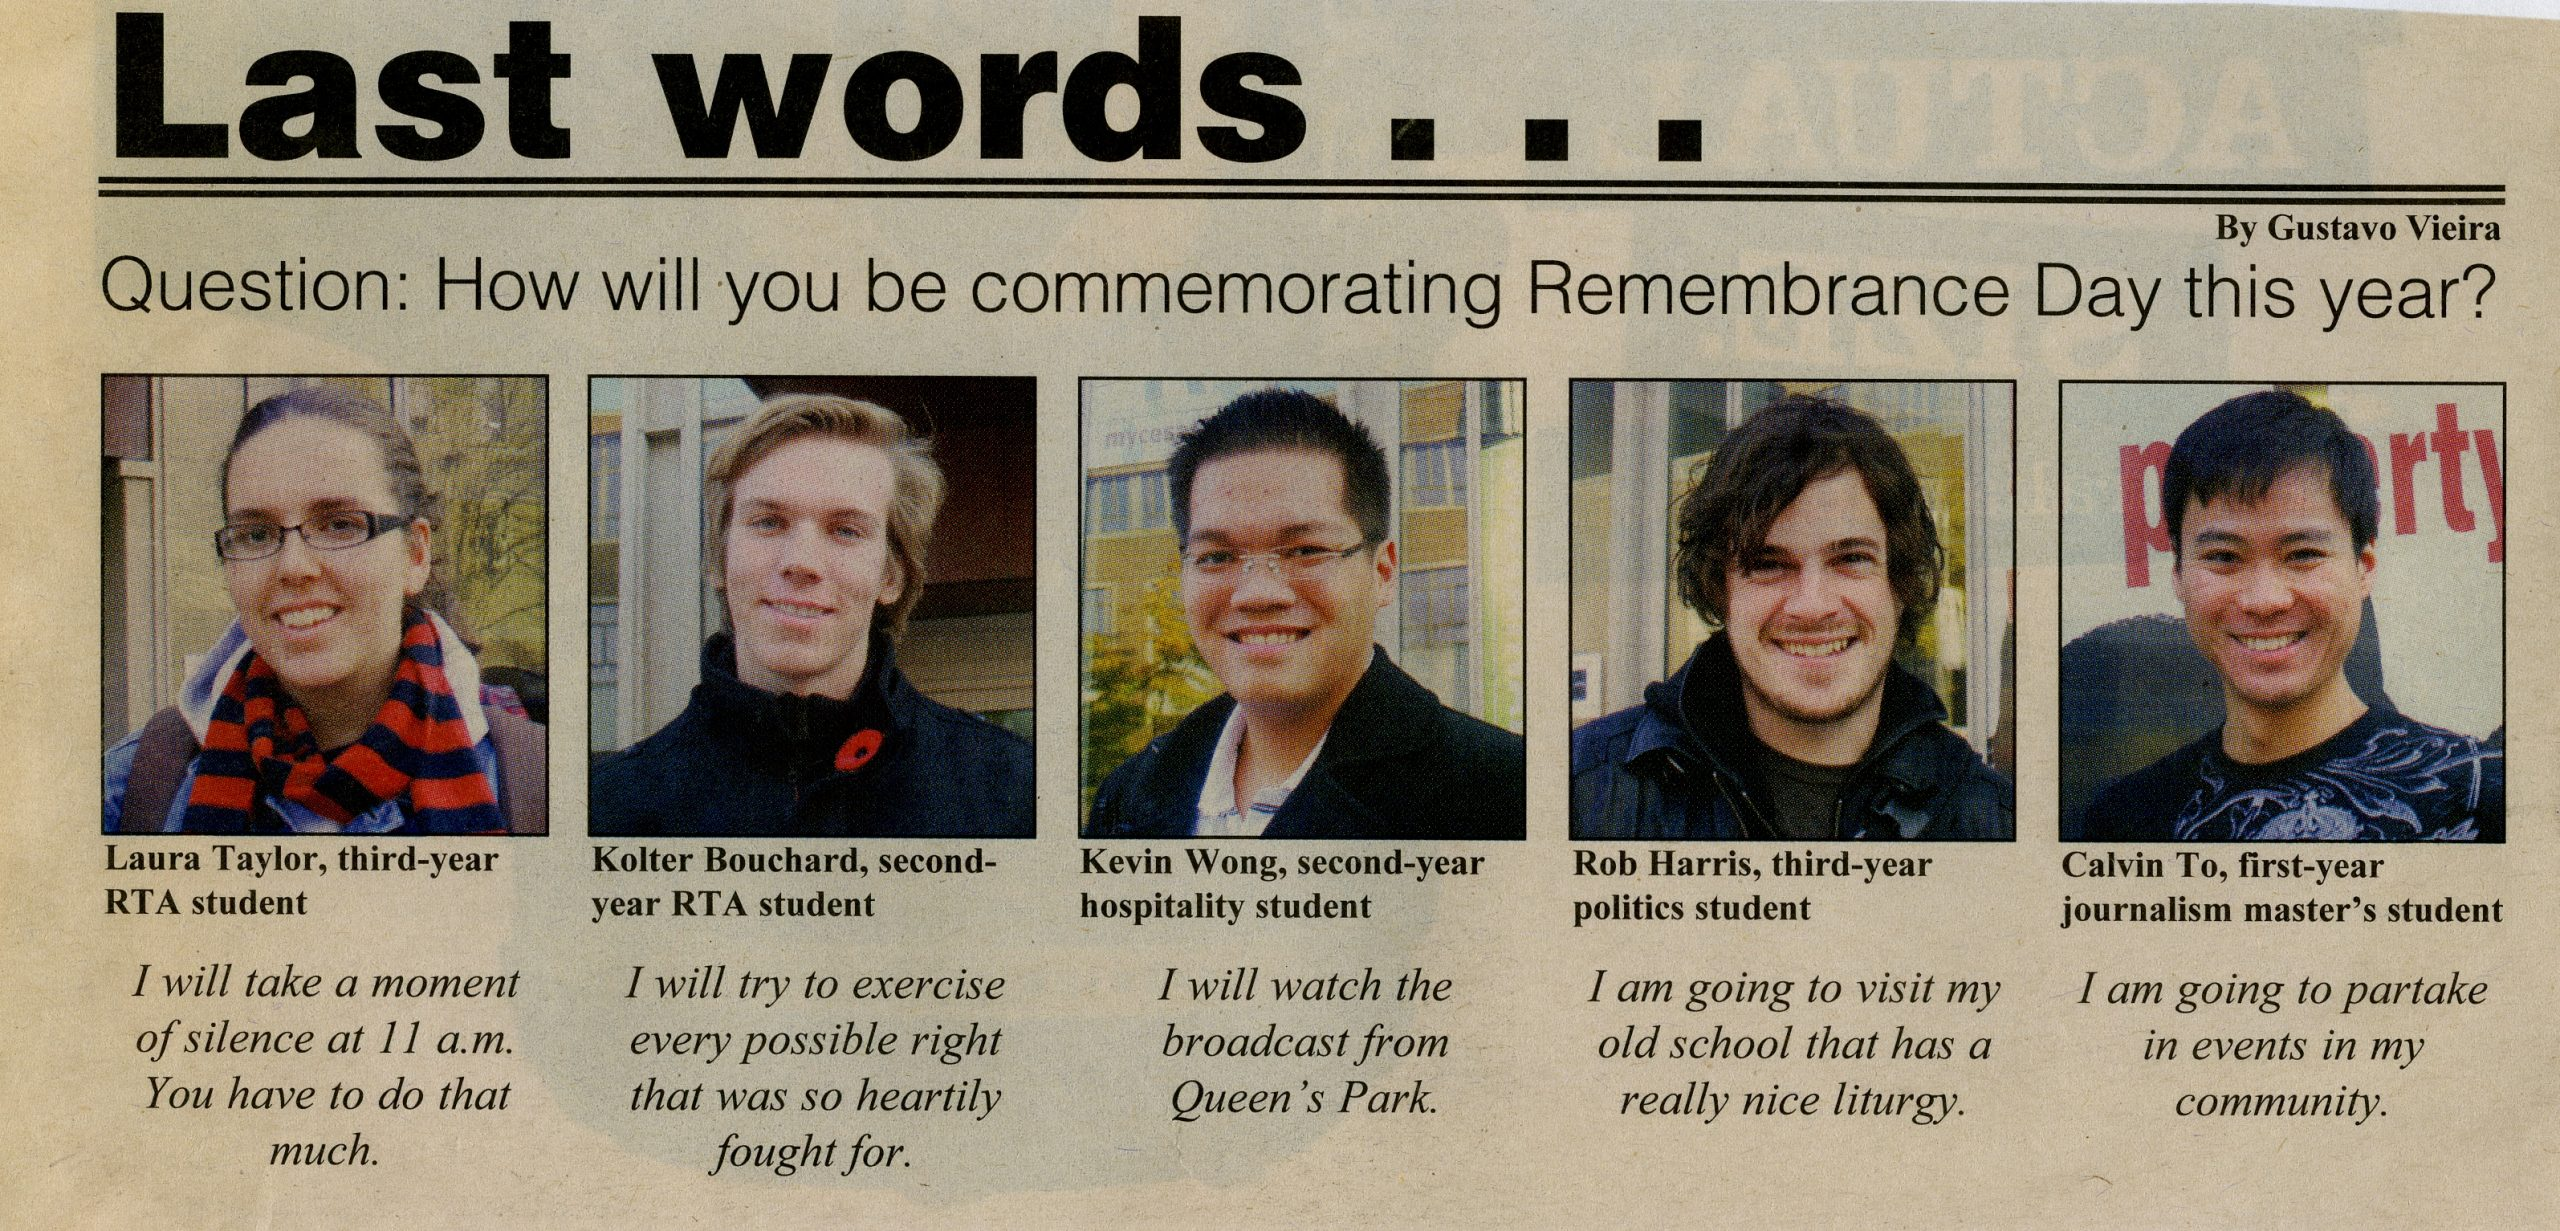 A newspaper article featuring 5 students and their opinion on Remembrance Day